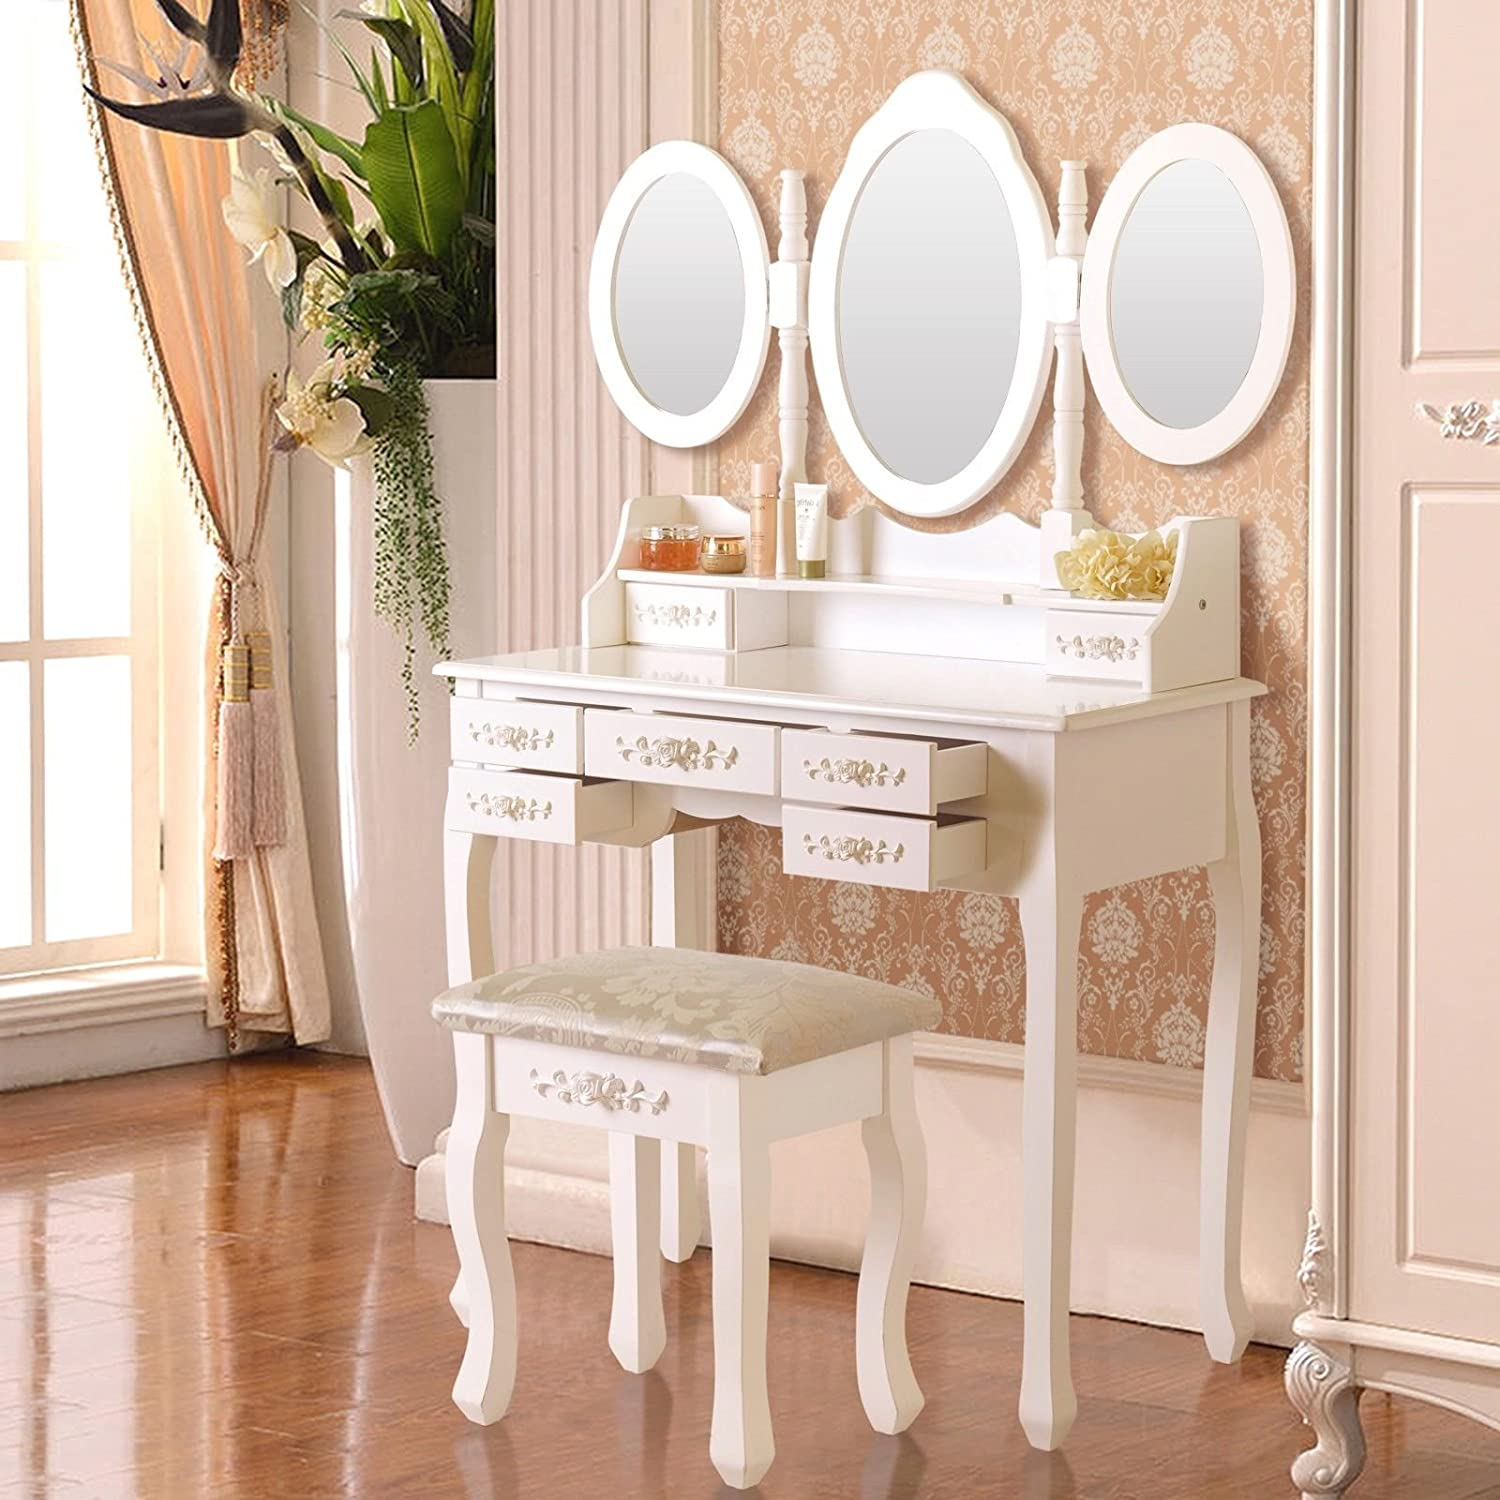 Amazon: Vanity White Makeup Dressing Table Set Wood Desk W/Stool 7  Drawer&Folding Mirror: Kitchen & Dining